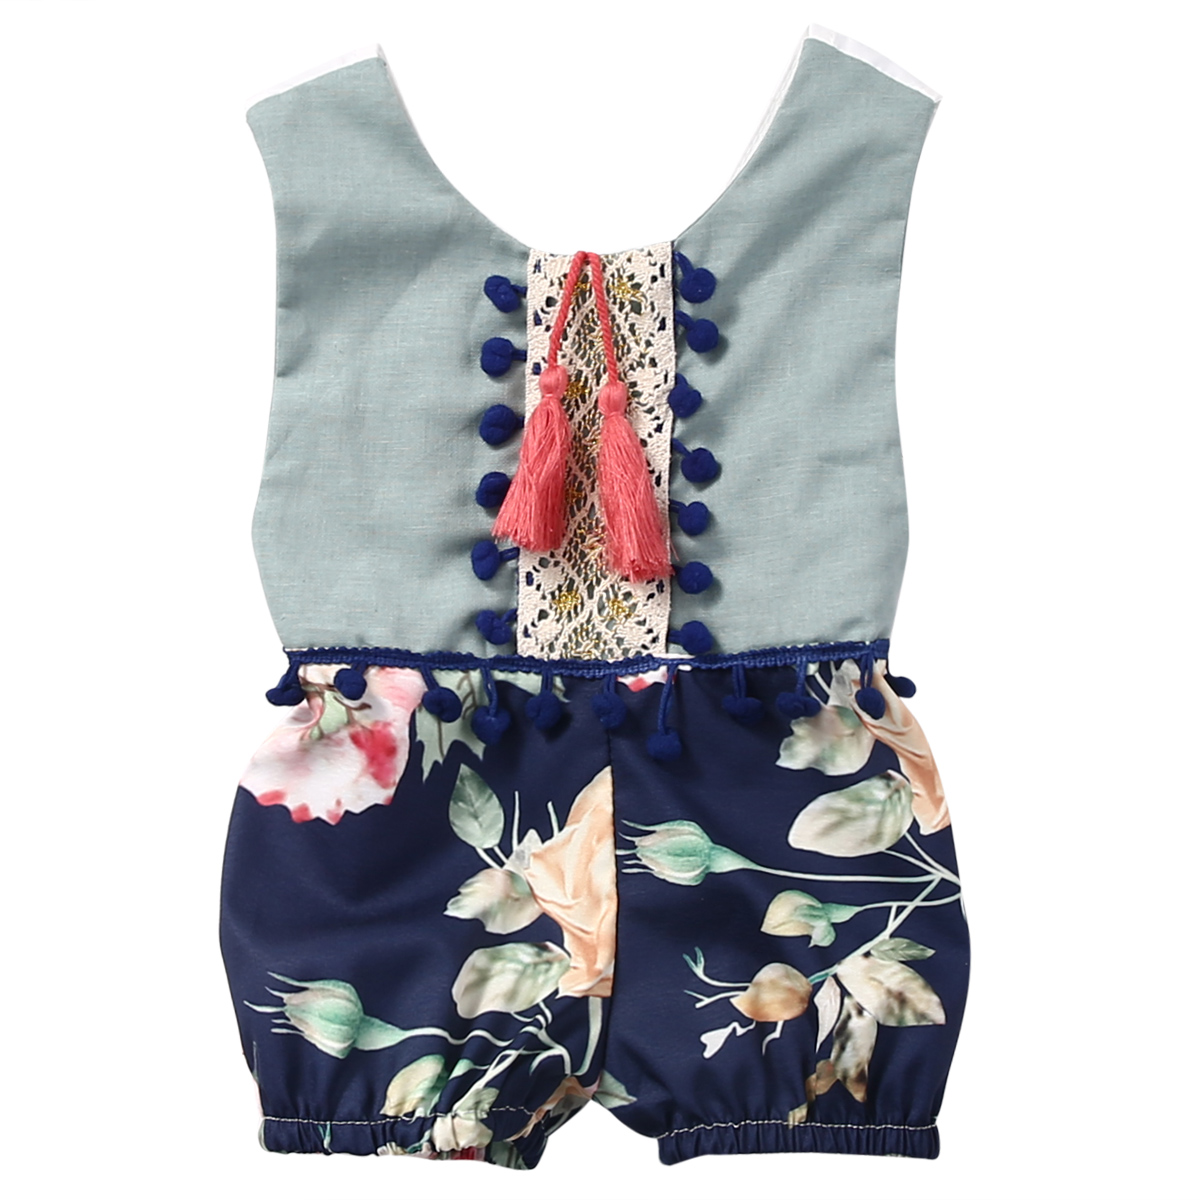 0-4Y Toddler Kids Girls Clothes Sleeveless Floral Romper Baby Girl Rompers Playsuit One Pieces Outfit Kids Tracksuit 2016 hot selling baby kids girls one piece sleeveless heart dots bib playsuit jumpsuit t shirt pants outfit clothes 2 7y